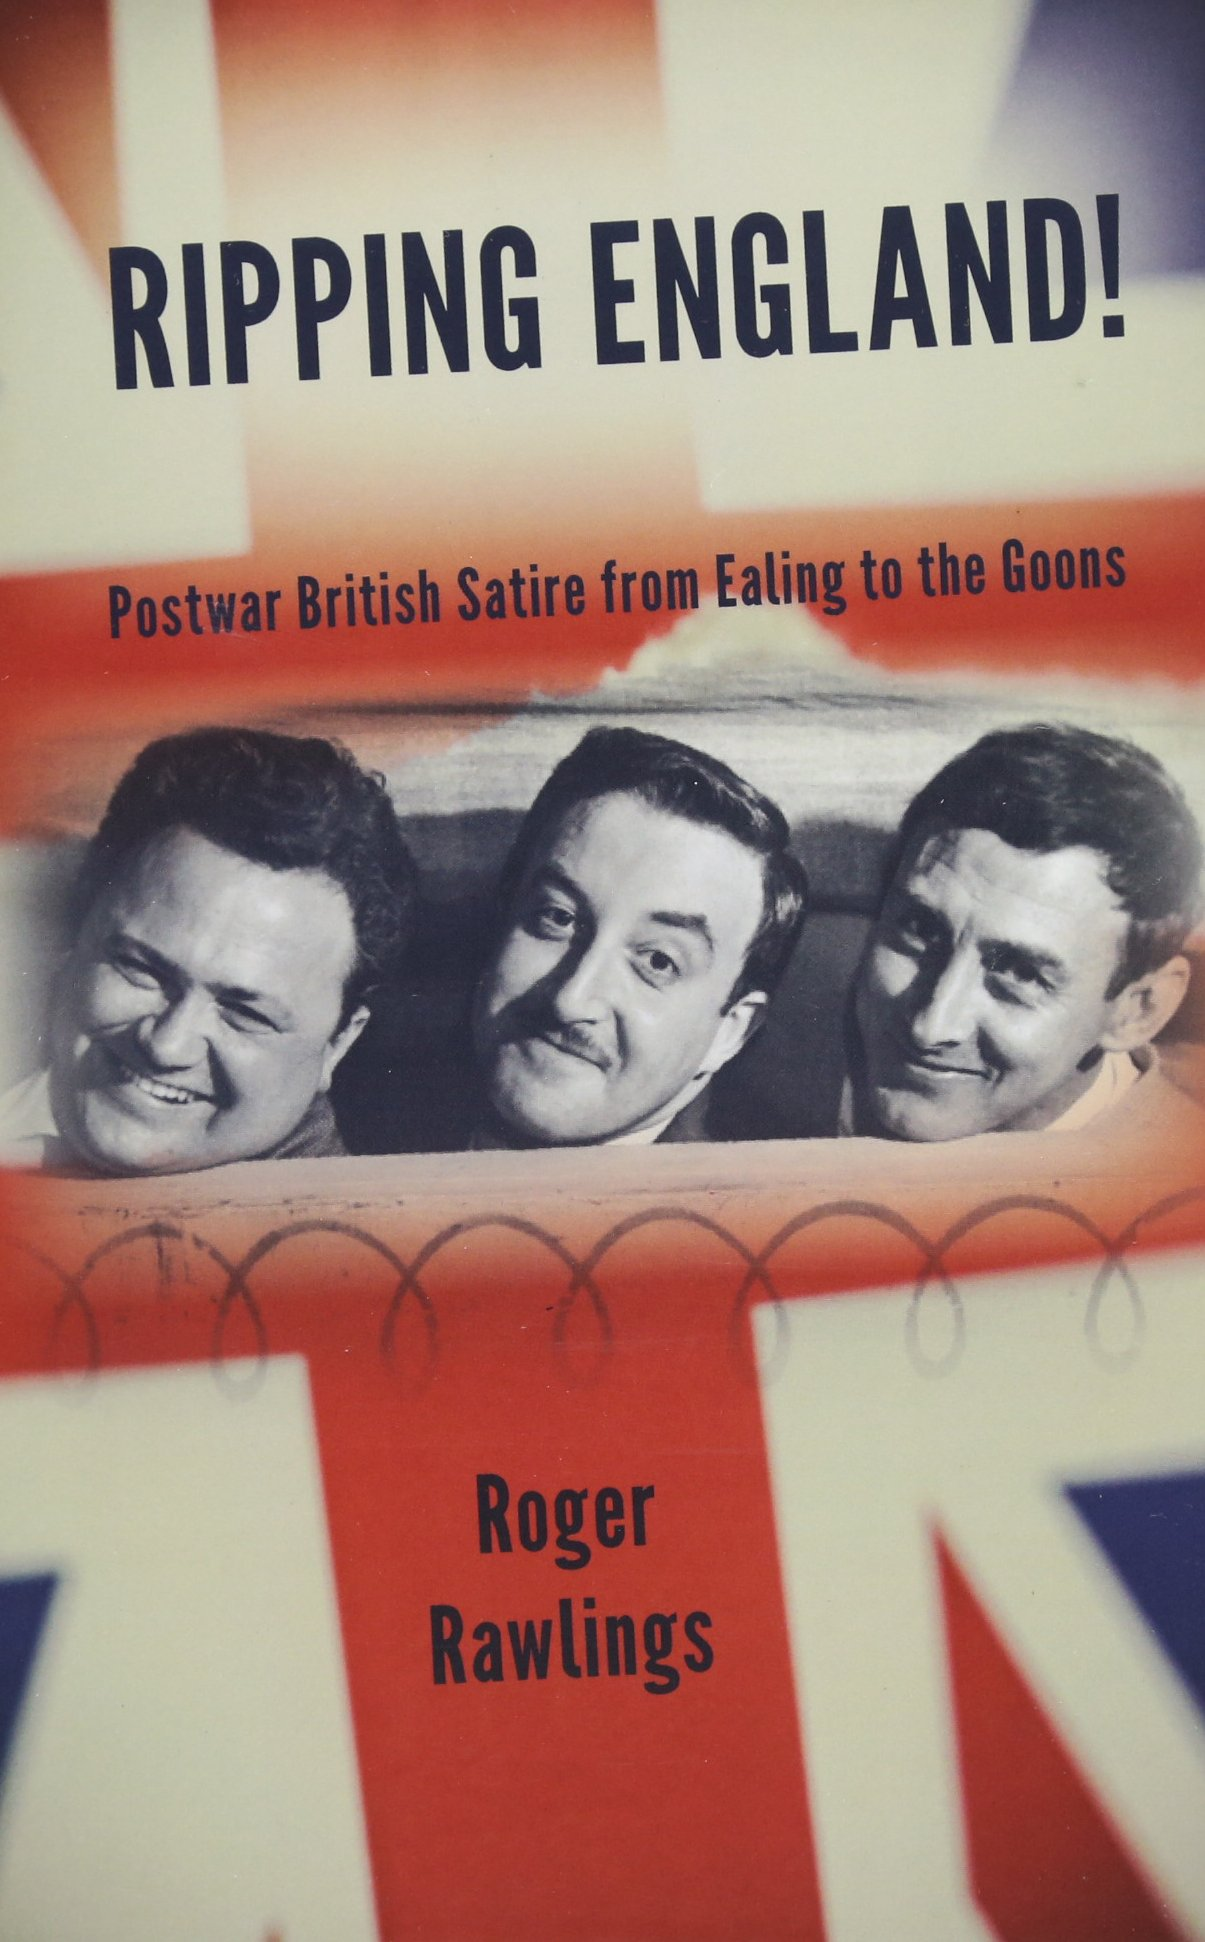 Download Ripping England!: Postwar British Satire from Ealing to the Goons (SUNY series, Horizons of Cinema) ebook